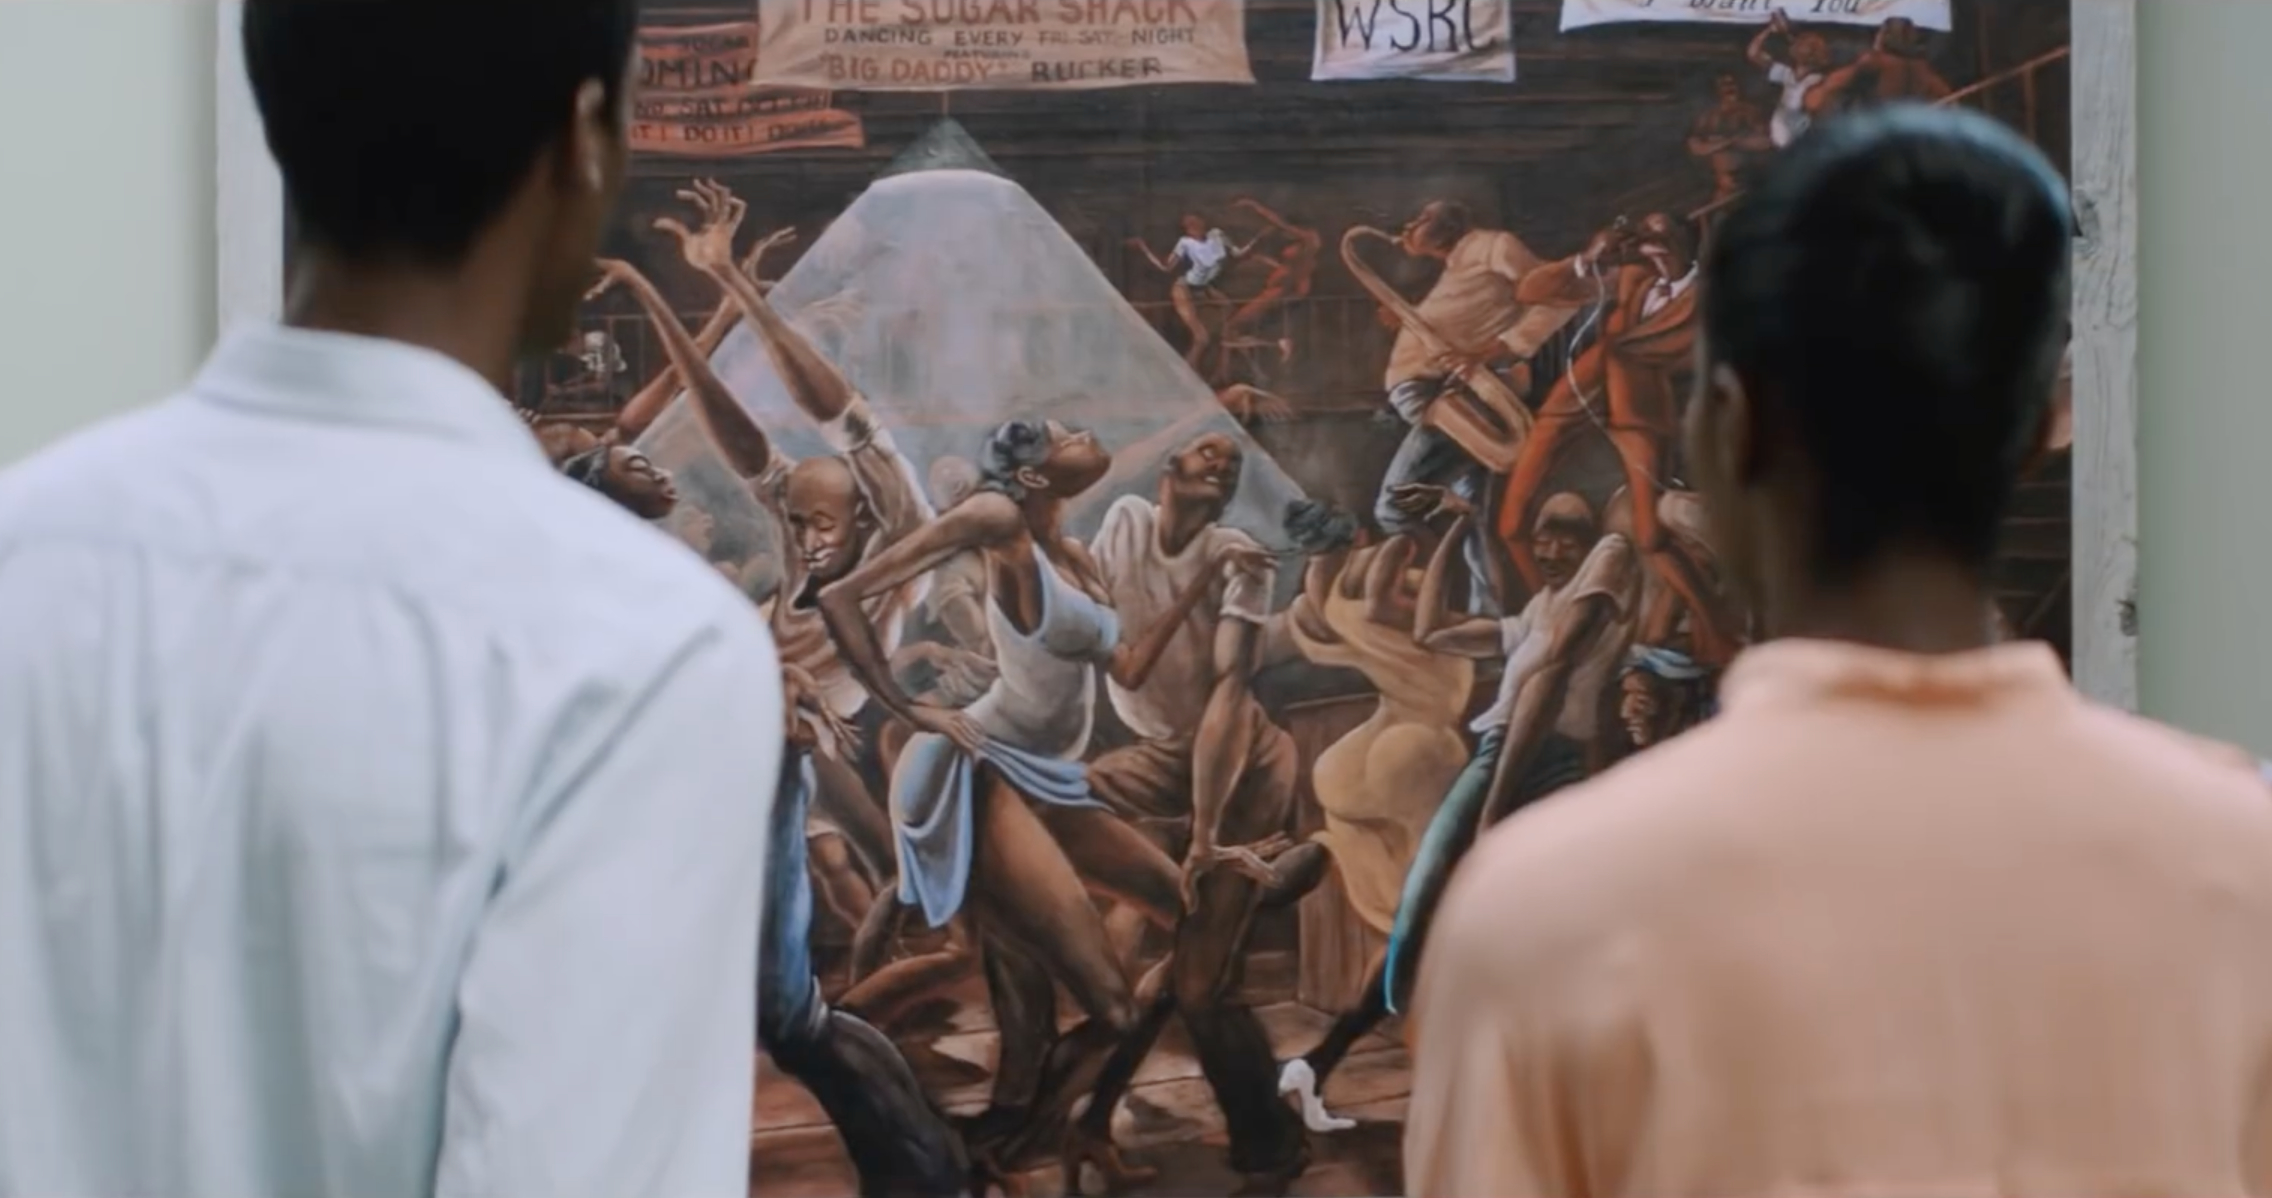 Southside With You - Art Institute Scene - Ernie Barnes Painting